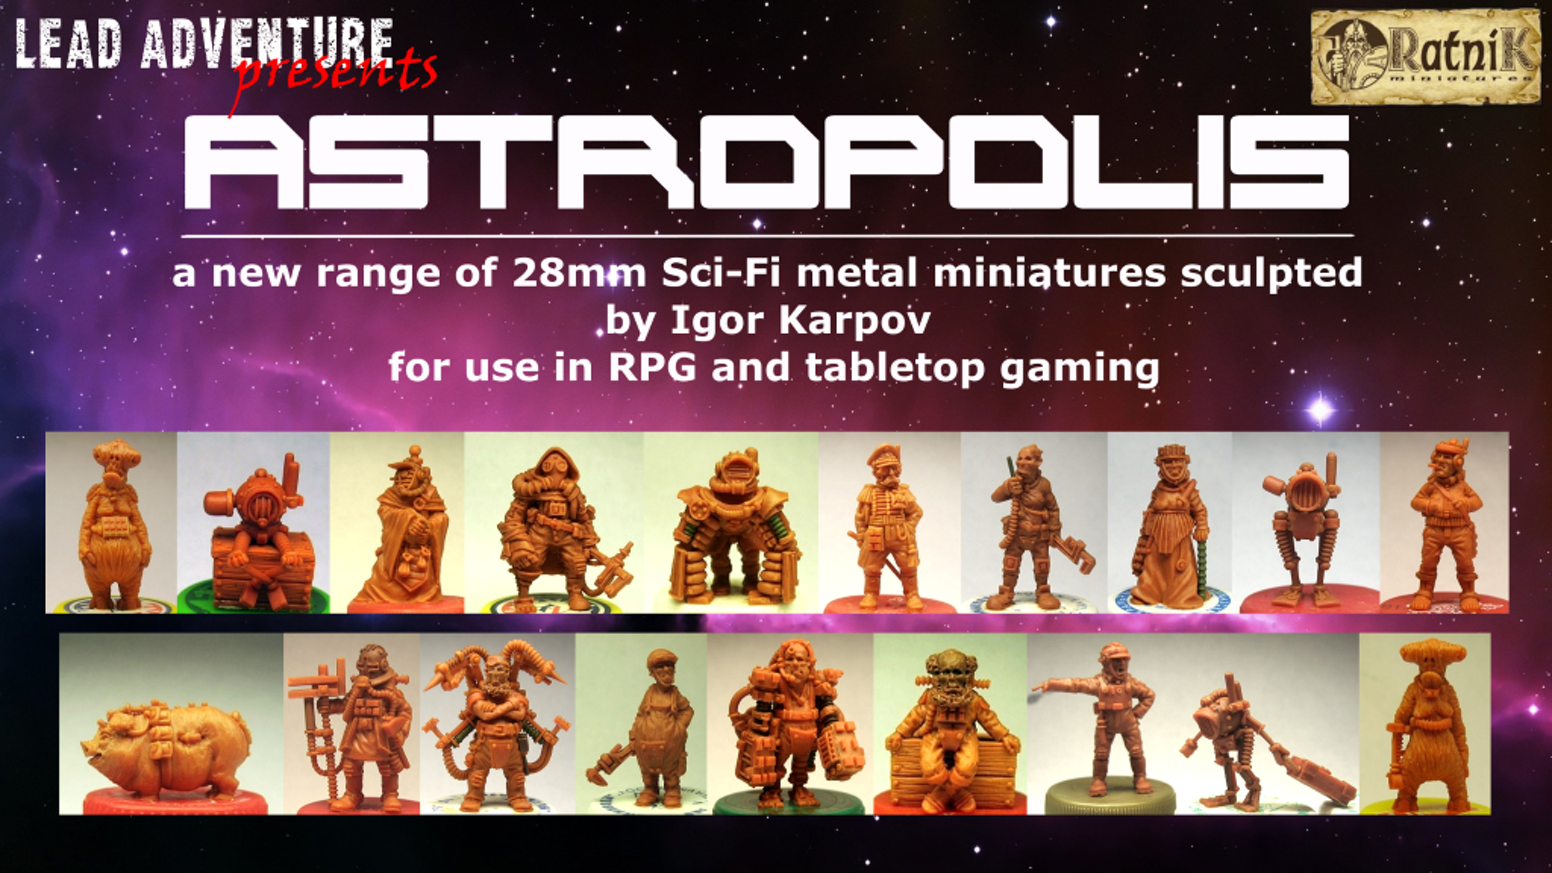 a new range of  28mm scale Sci-Fi miniatures from Lead Adventure Miniatures for use in RPG and tabletop games, sculpted by Igor Karpov